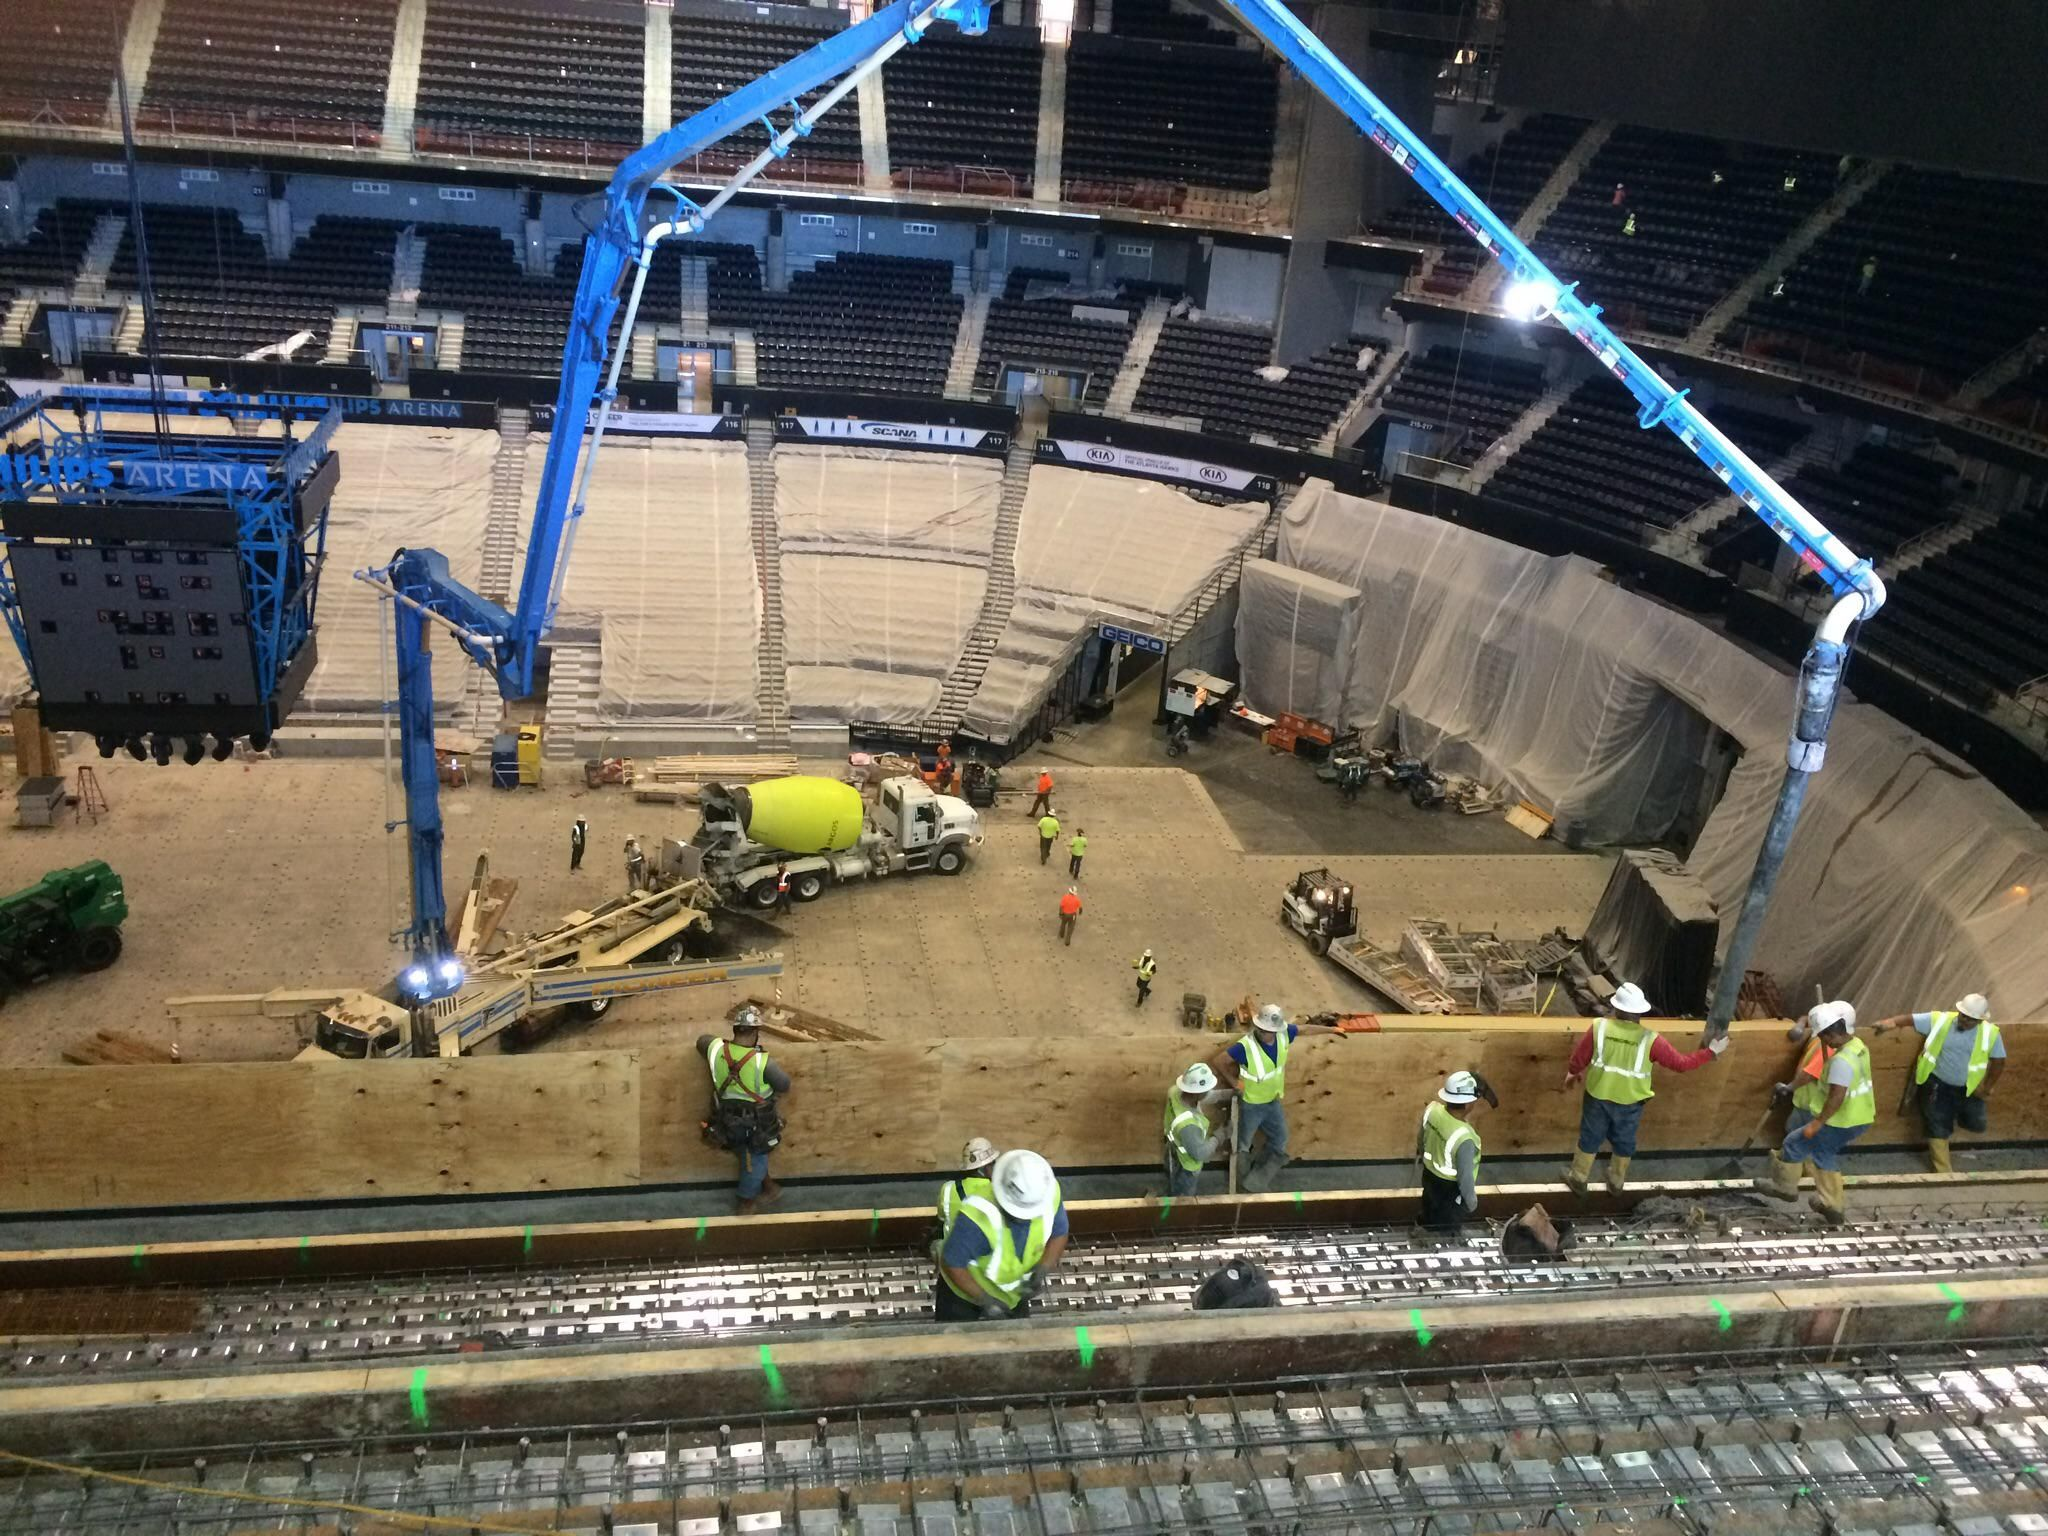 A while back pouring the new seating at the new State Farm